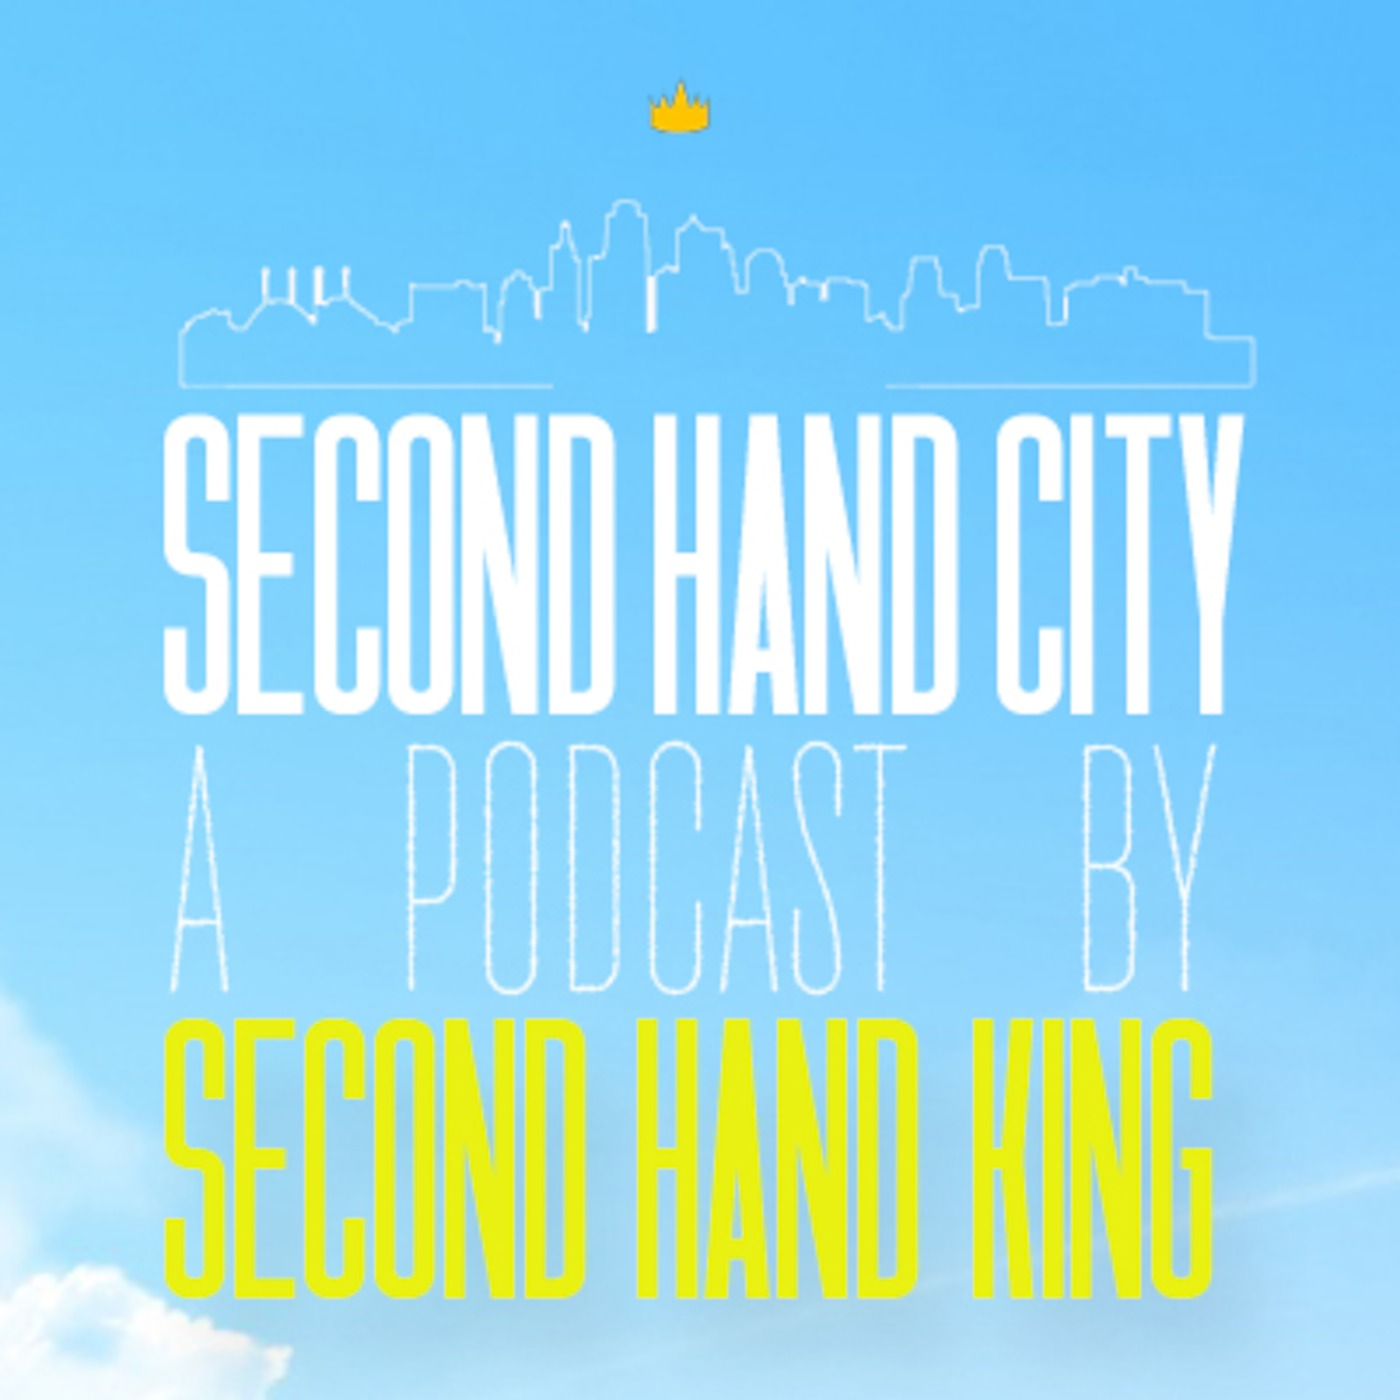 Second Hand King presents: Second Hand City